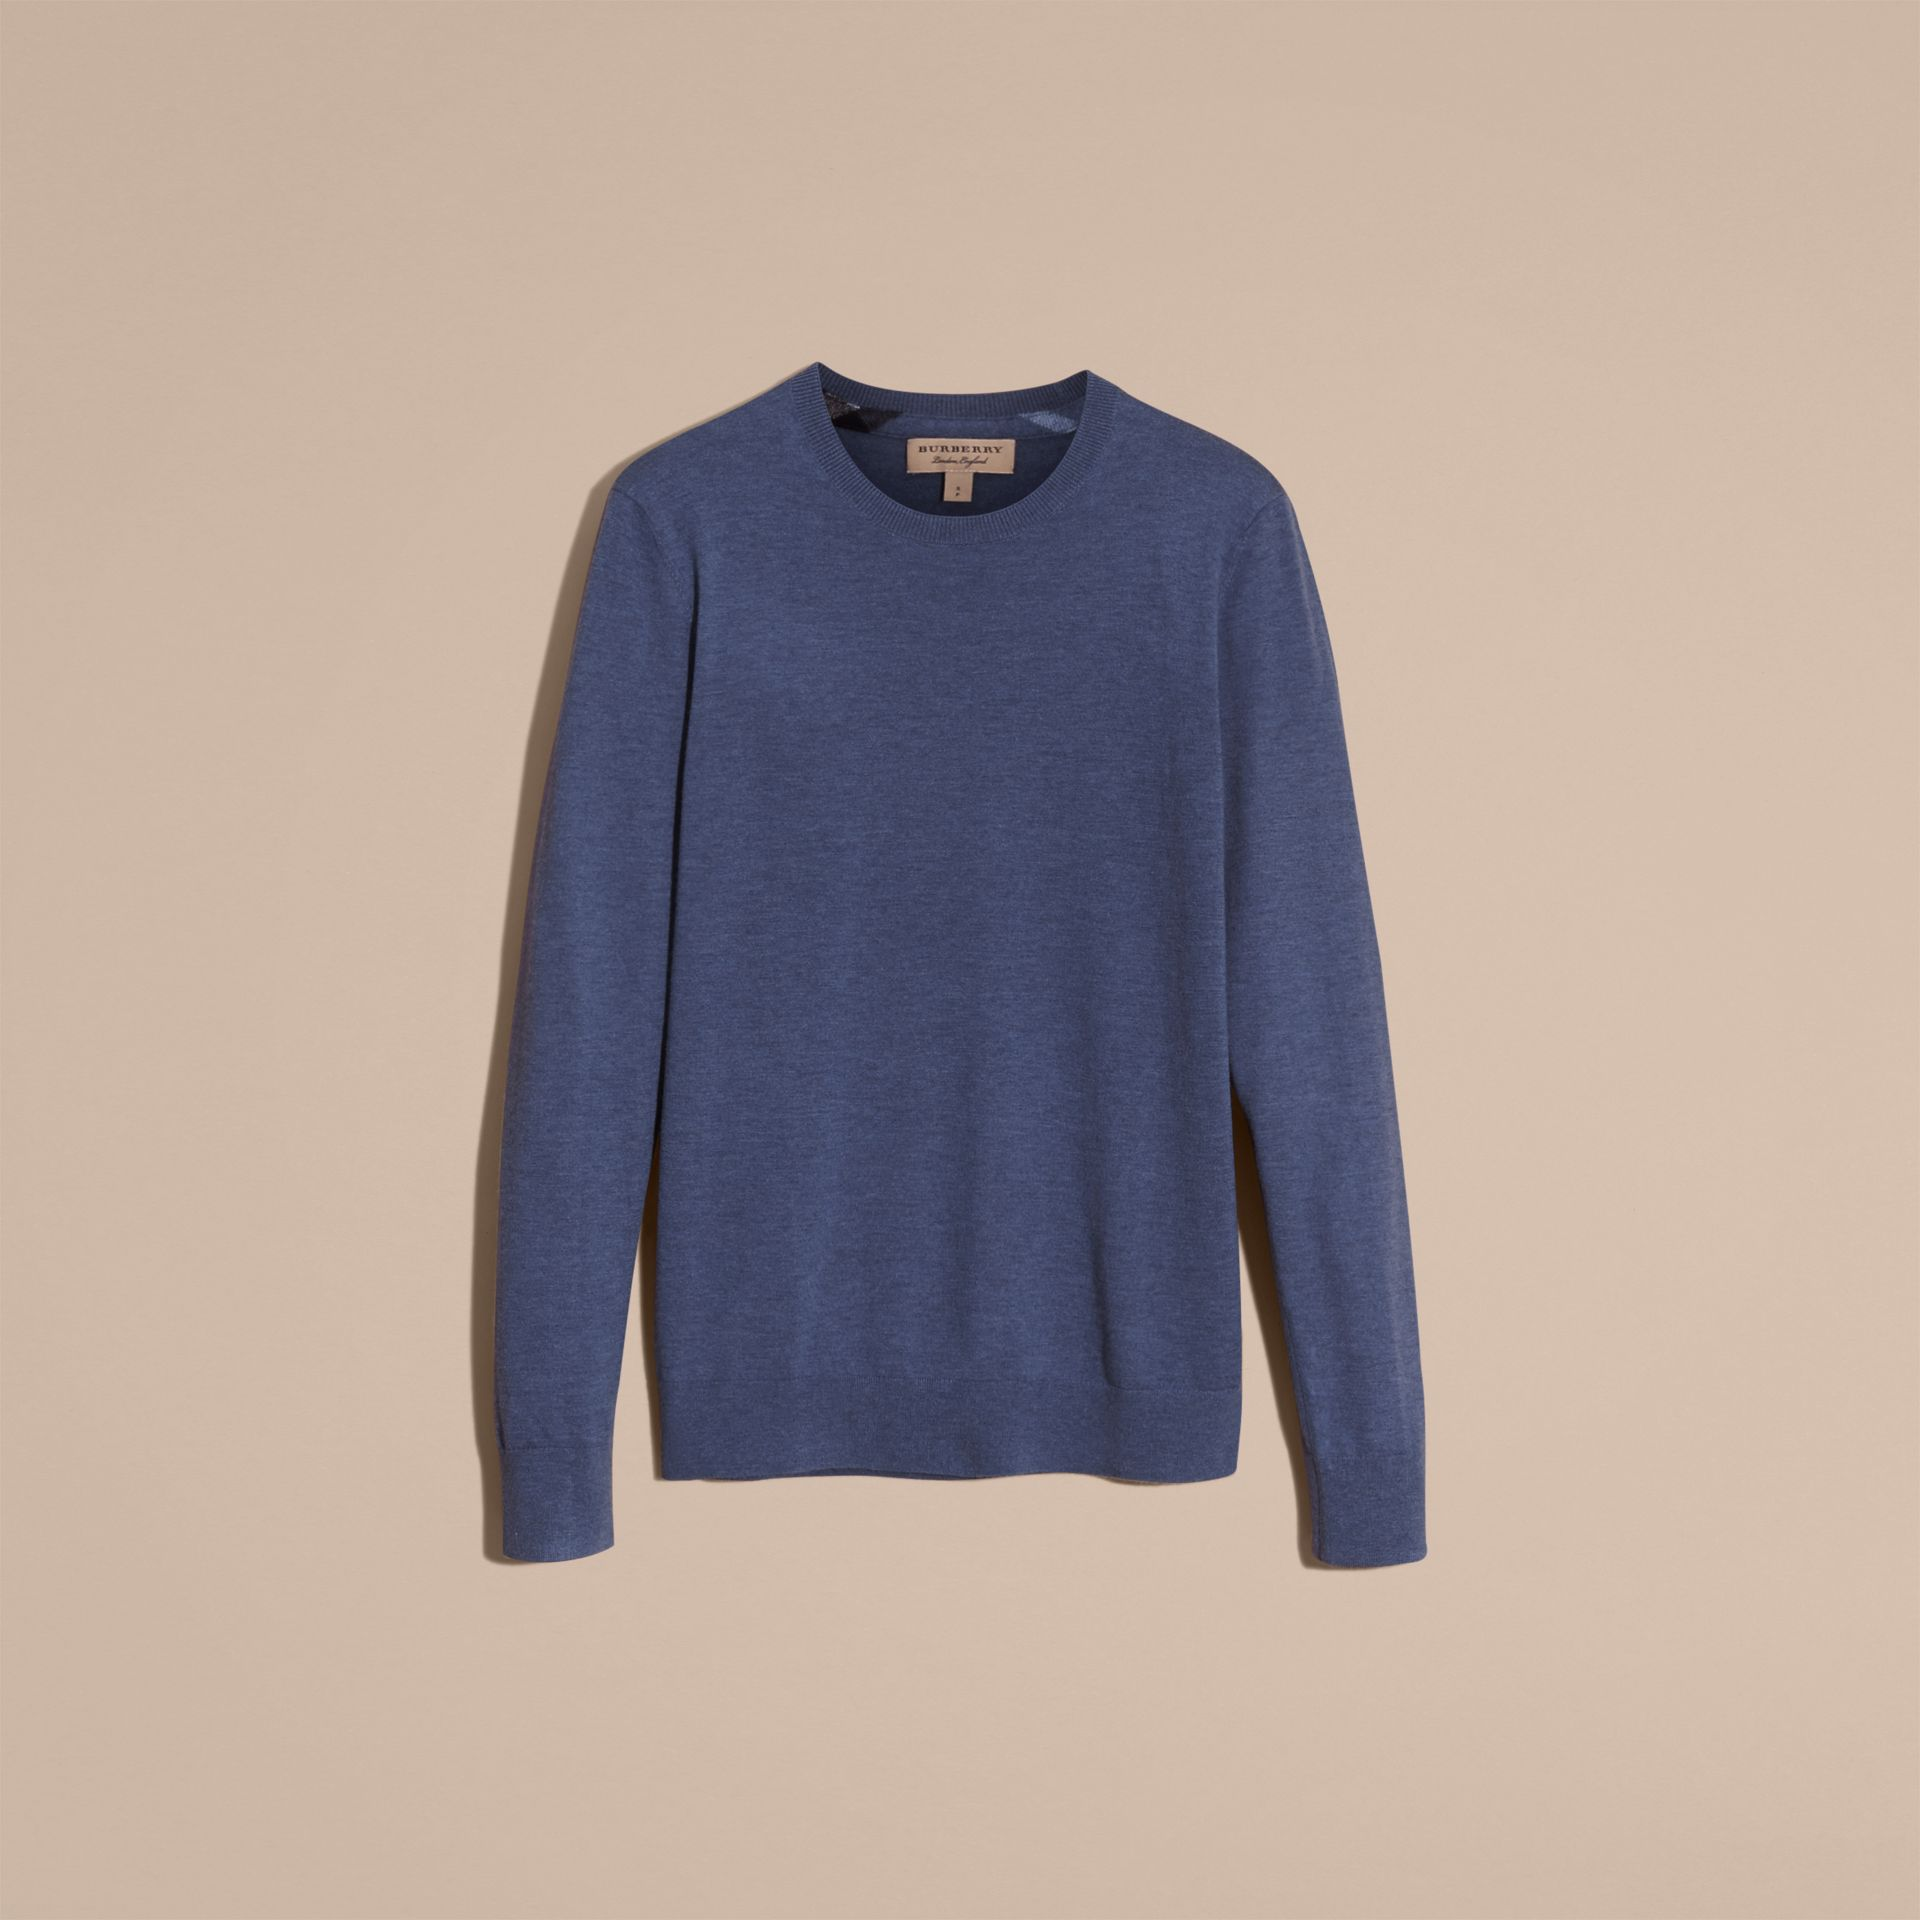 Dusty blue Lightweight Crew Neck Cashmere Sweater with Check Trim Dusty Blue - gallery image 4